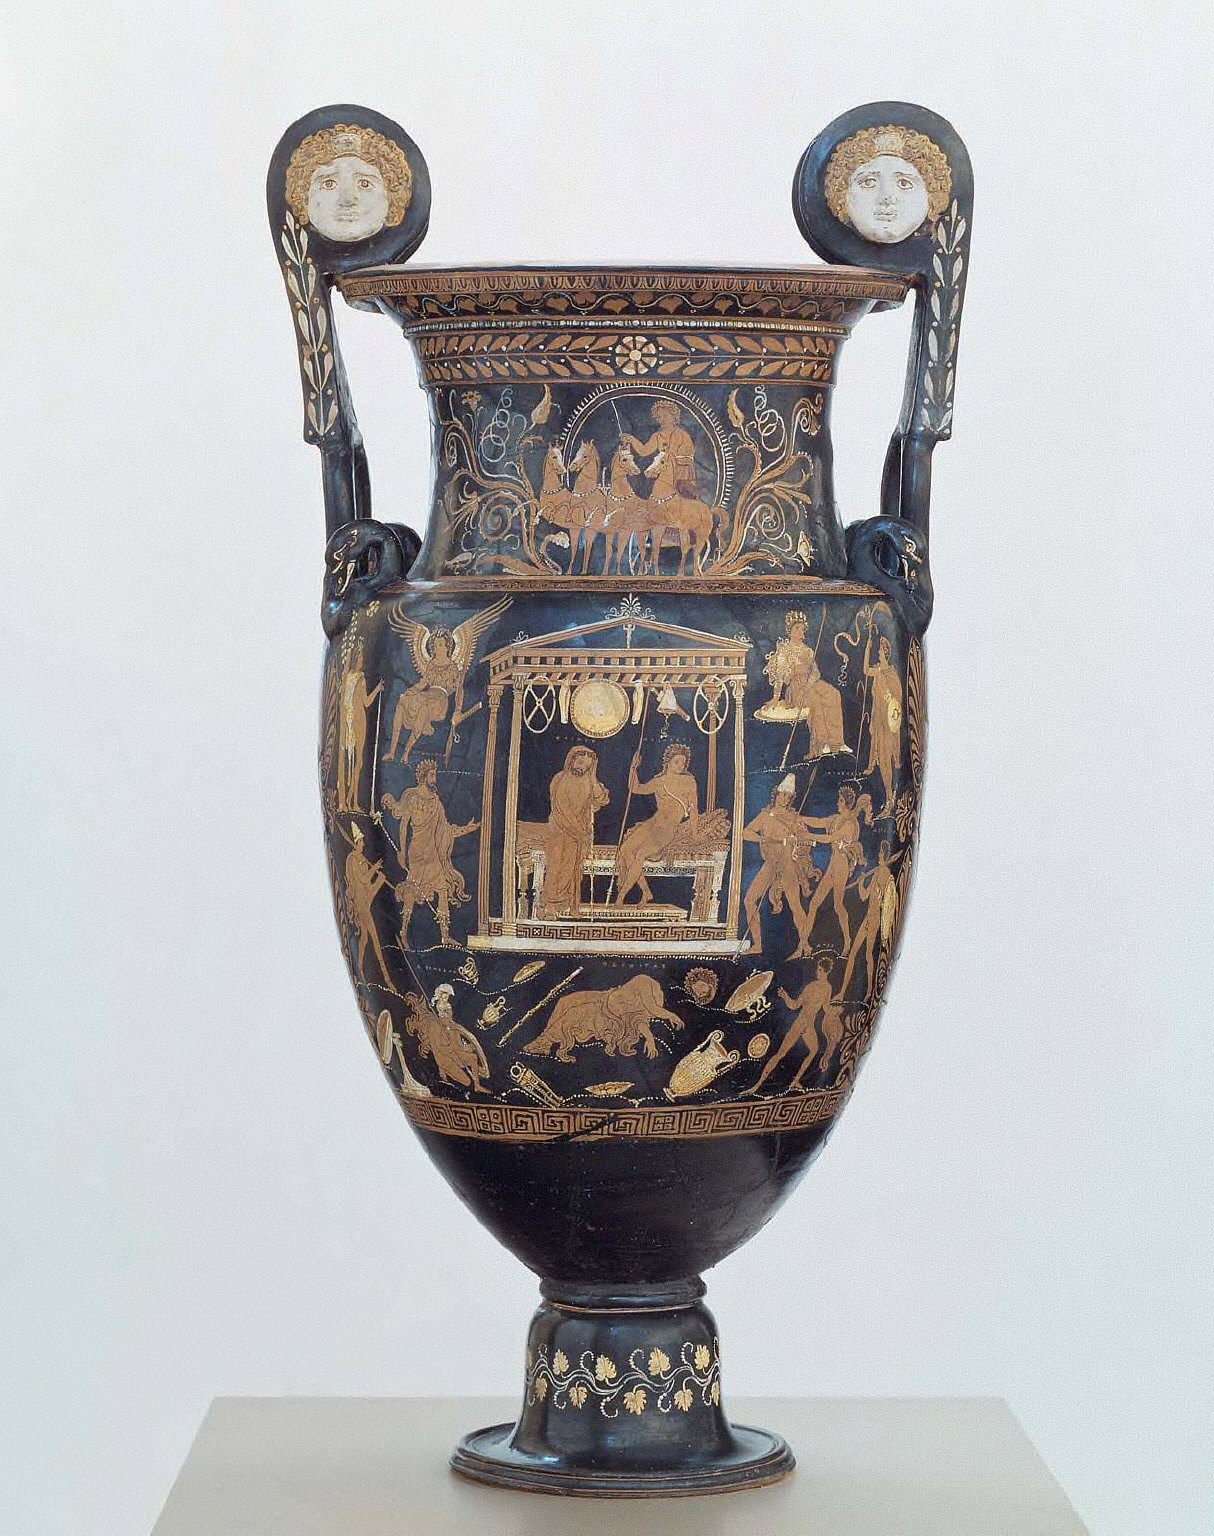 Vessel for mixing wine and water (volute krater)